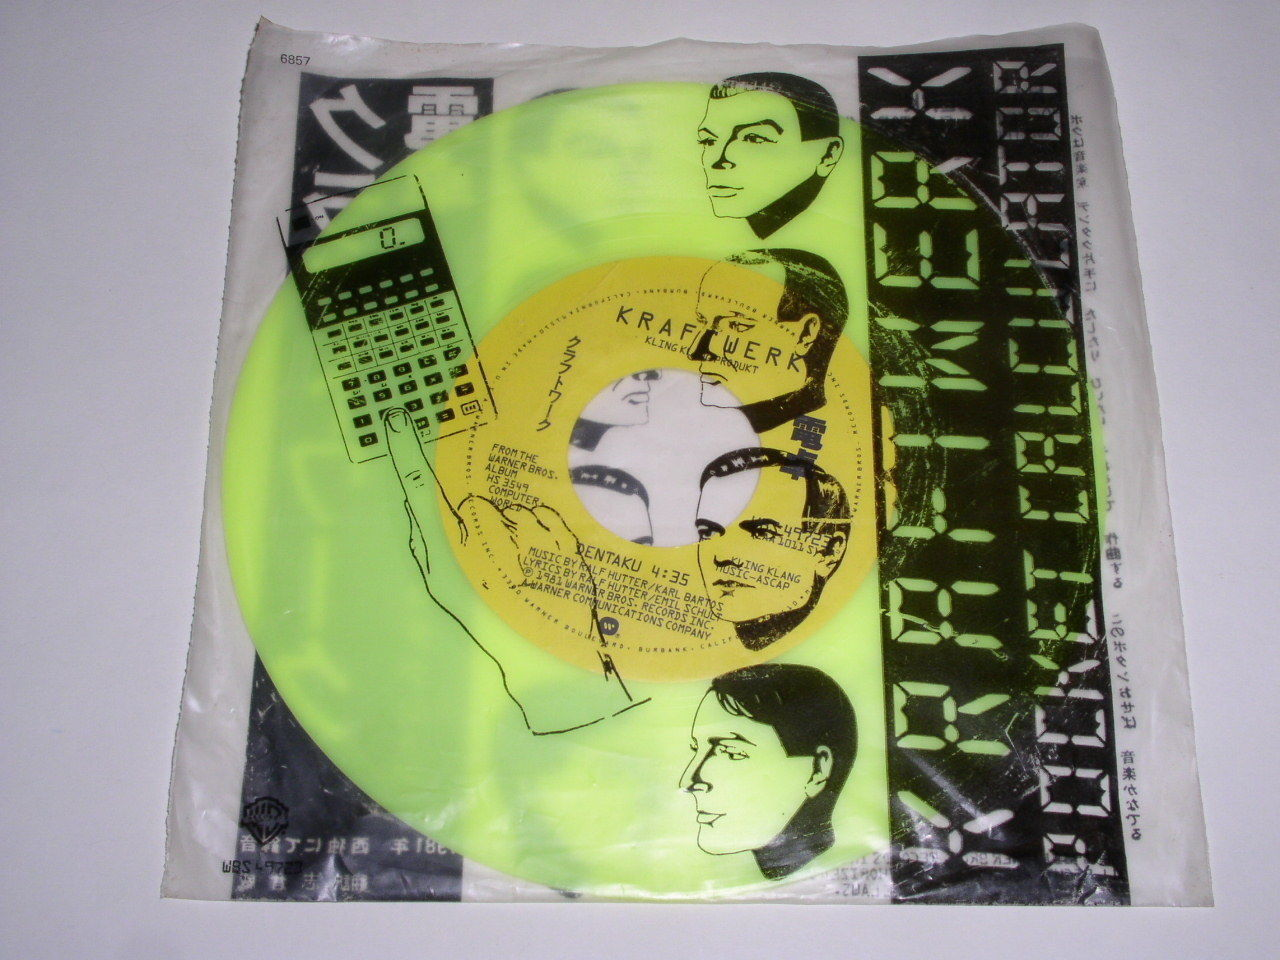 Primary image for Kraftwerk Pocket Calculator Neon Yellow Green Vinyl 45 Rpm Record With Sleeve